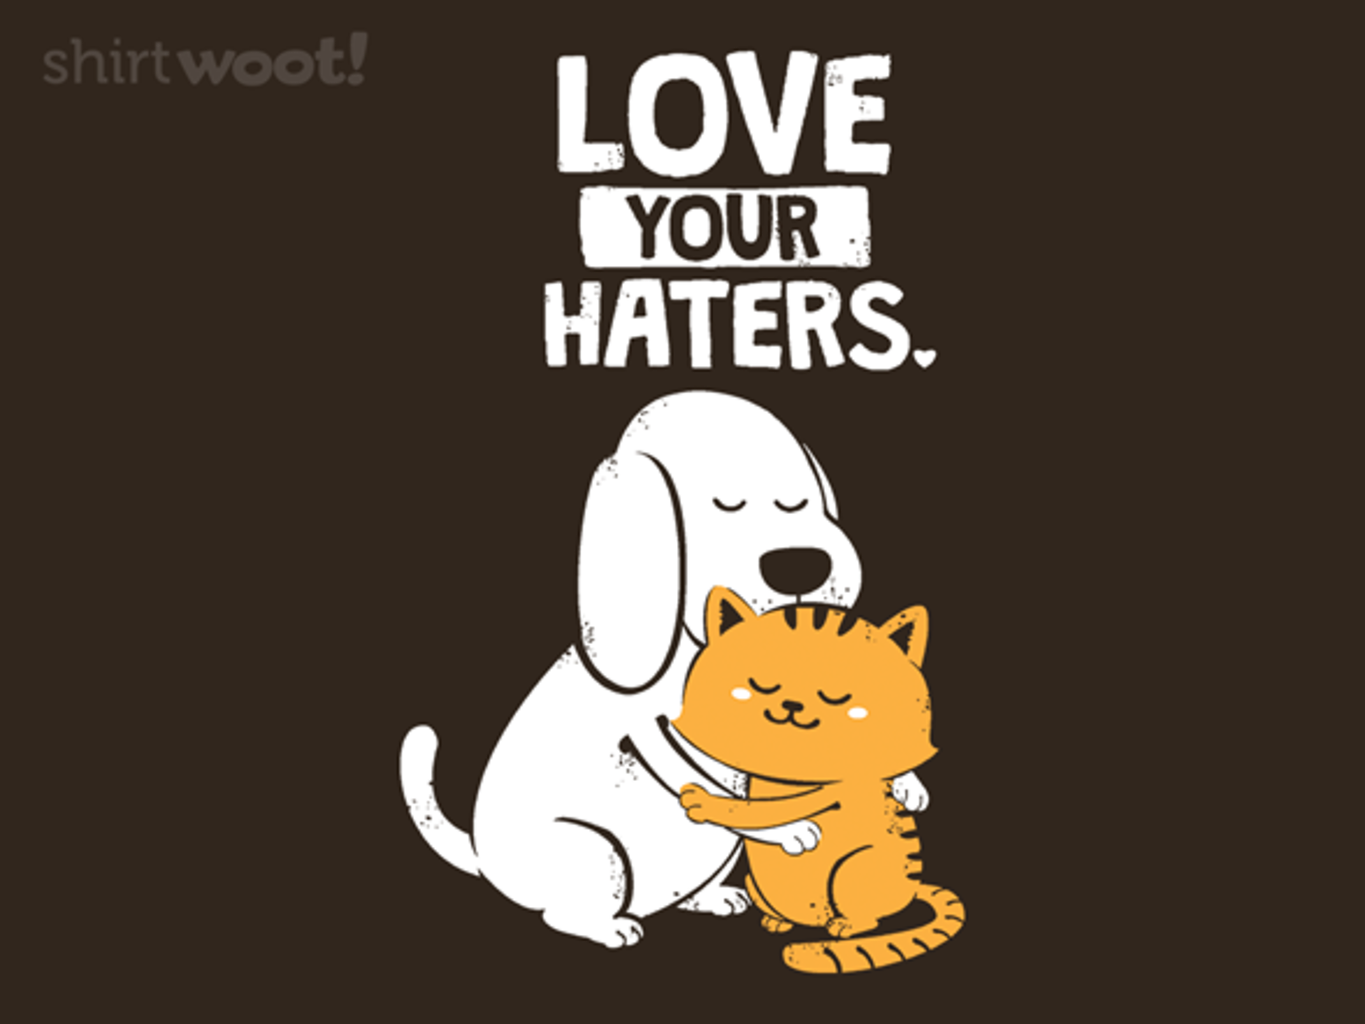 Woot!: Love Your Haters - $15.00 + Free shipping